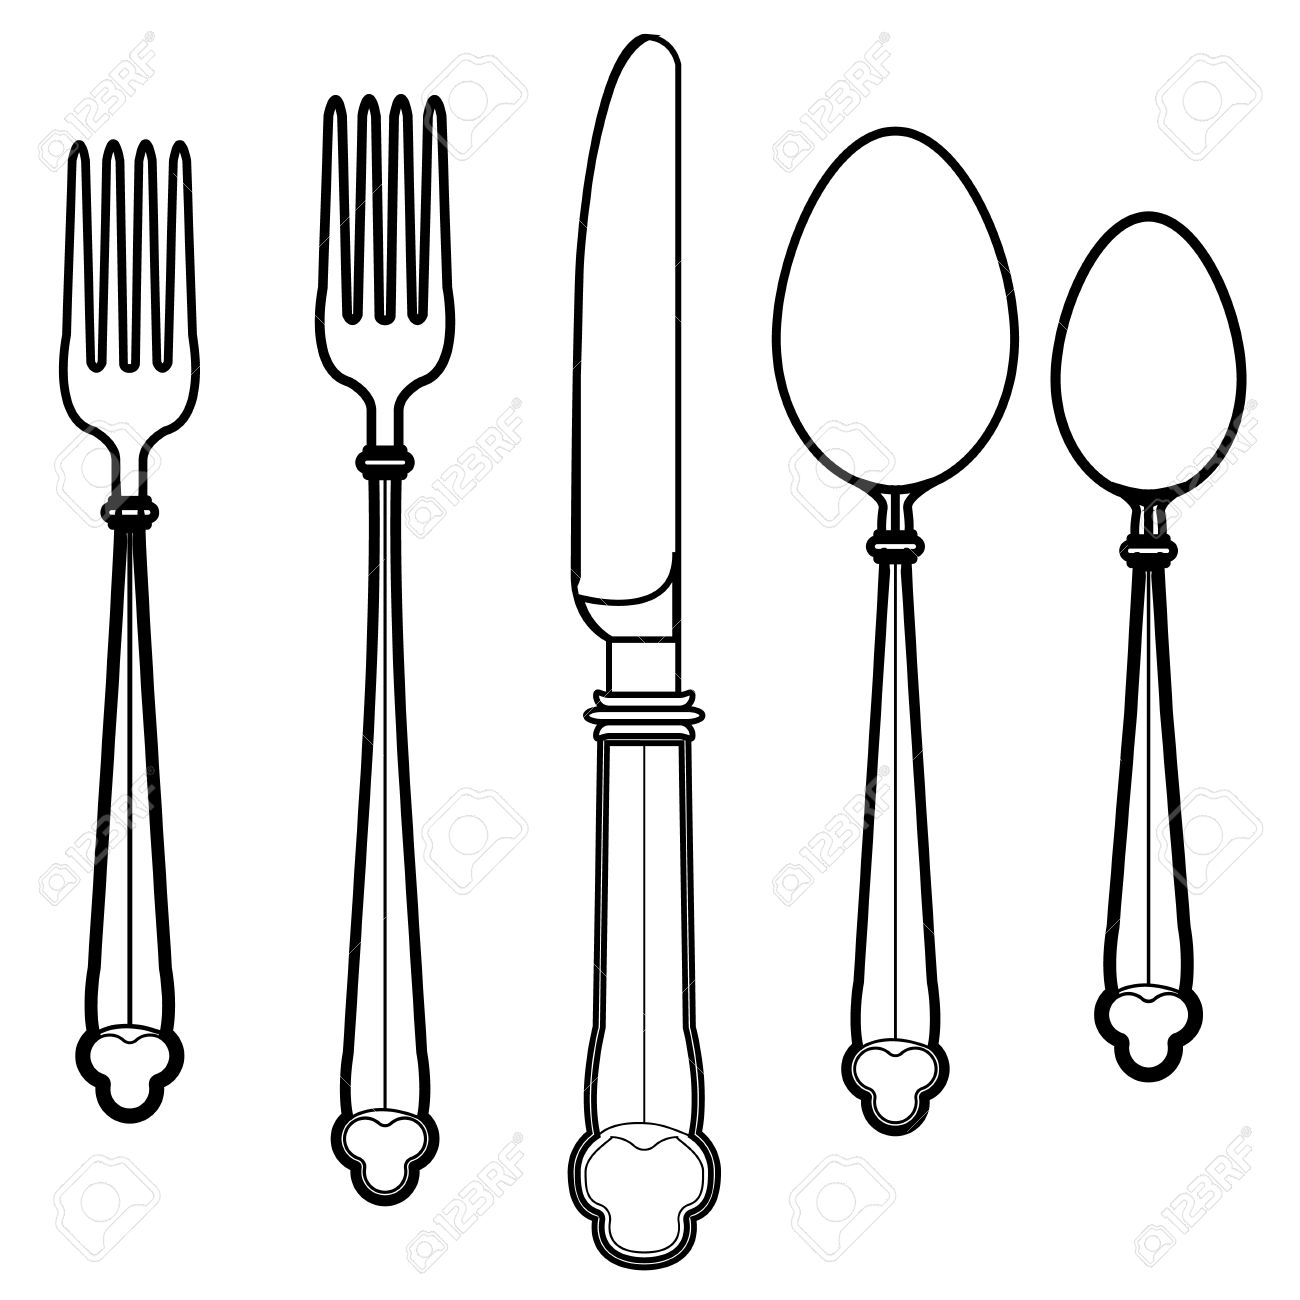 Eating Utensils Vector Royalty Free Cliparts, Vectors, And Stock.